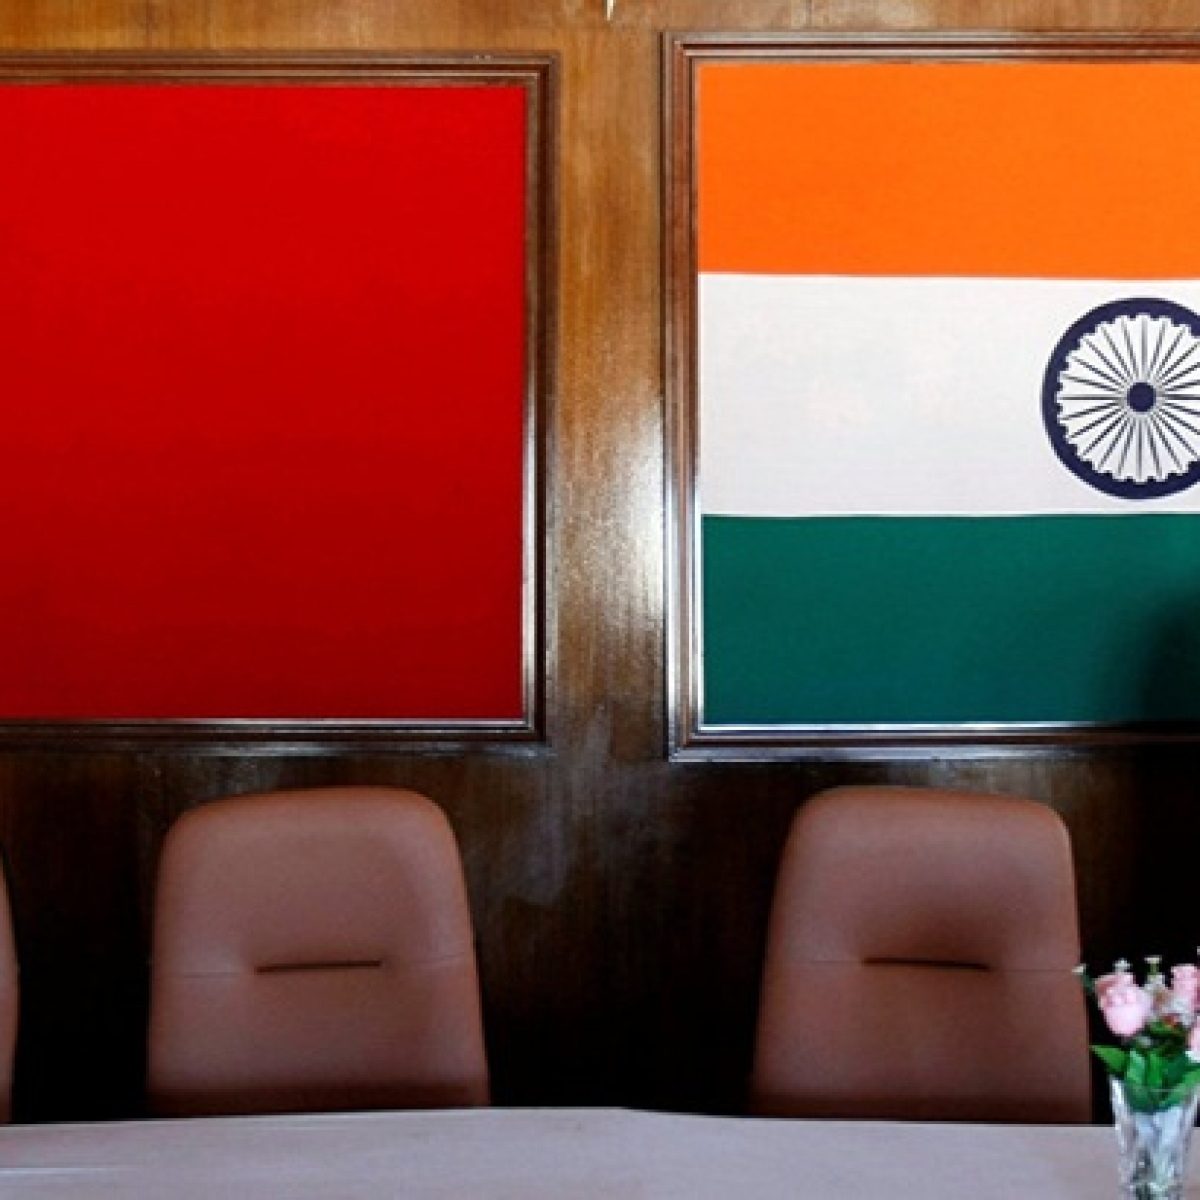 China's concern on revocation of Article 370 misplaced as it has no implication for LAC: Indian envoy